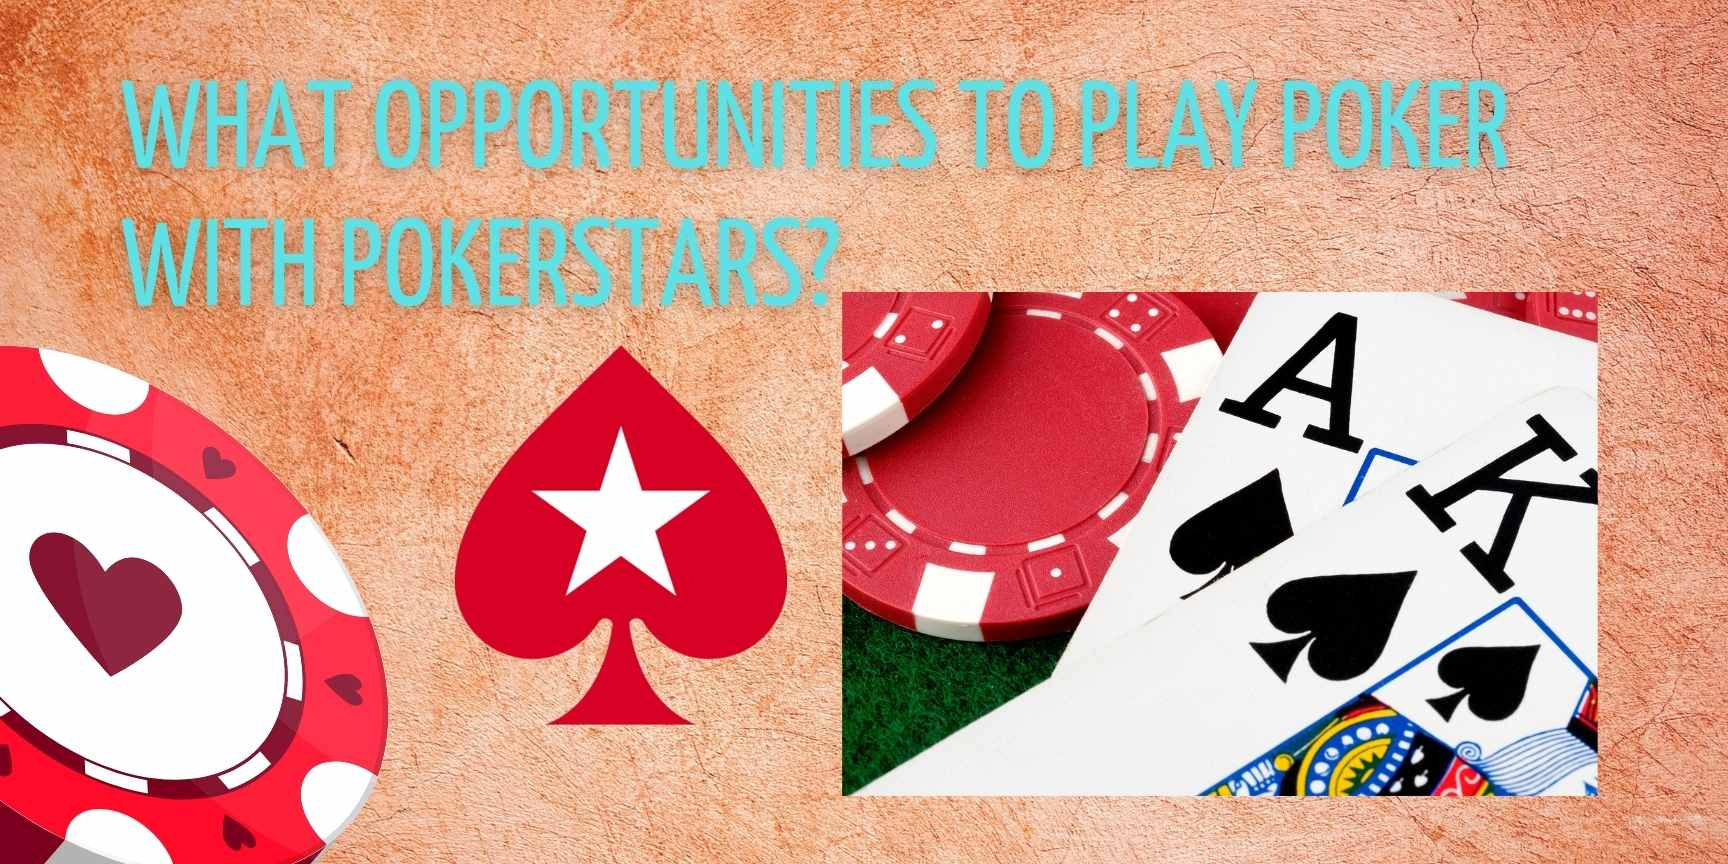 What opportunities to play poker with PokerStars?